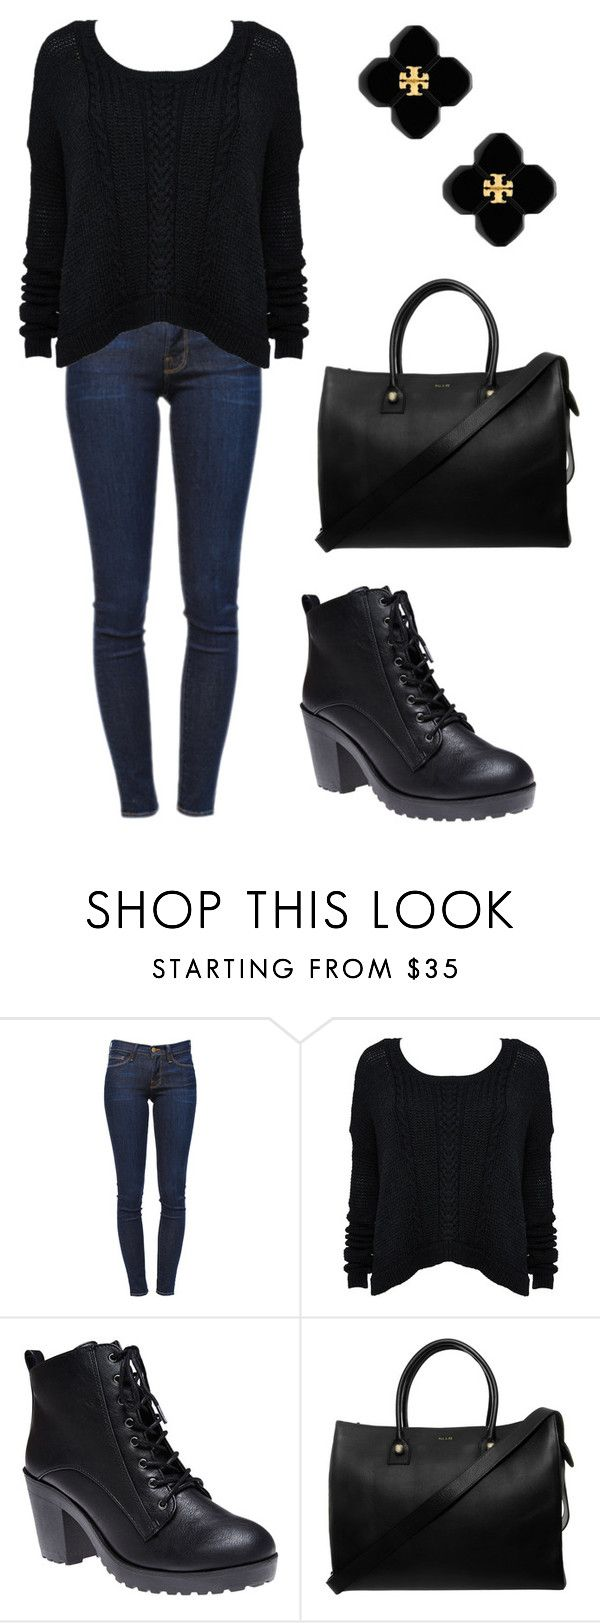 """Bold town"" by didiiidia ❤ liked on Polyvore featuring Frame Denim, Alice + Olivia, Wet Seal, Paul & Joe and Tory Burch"